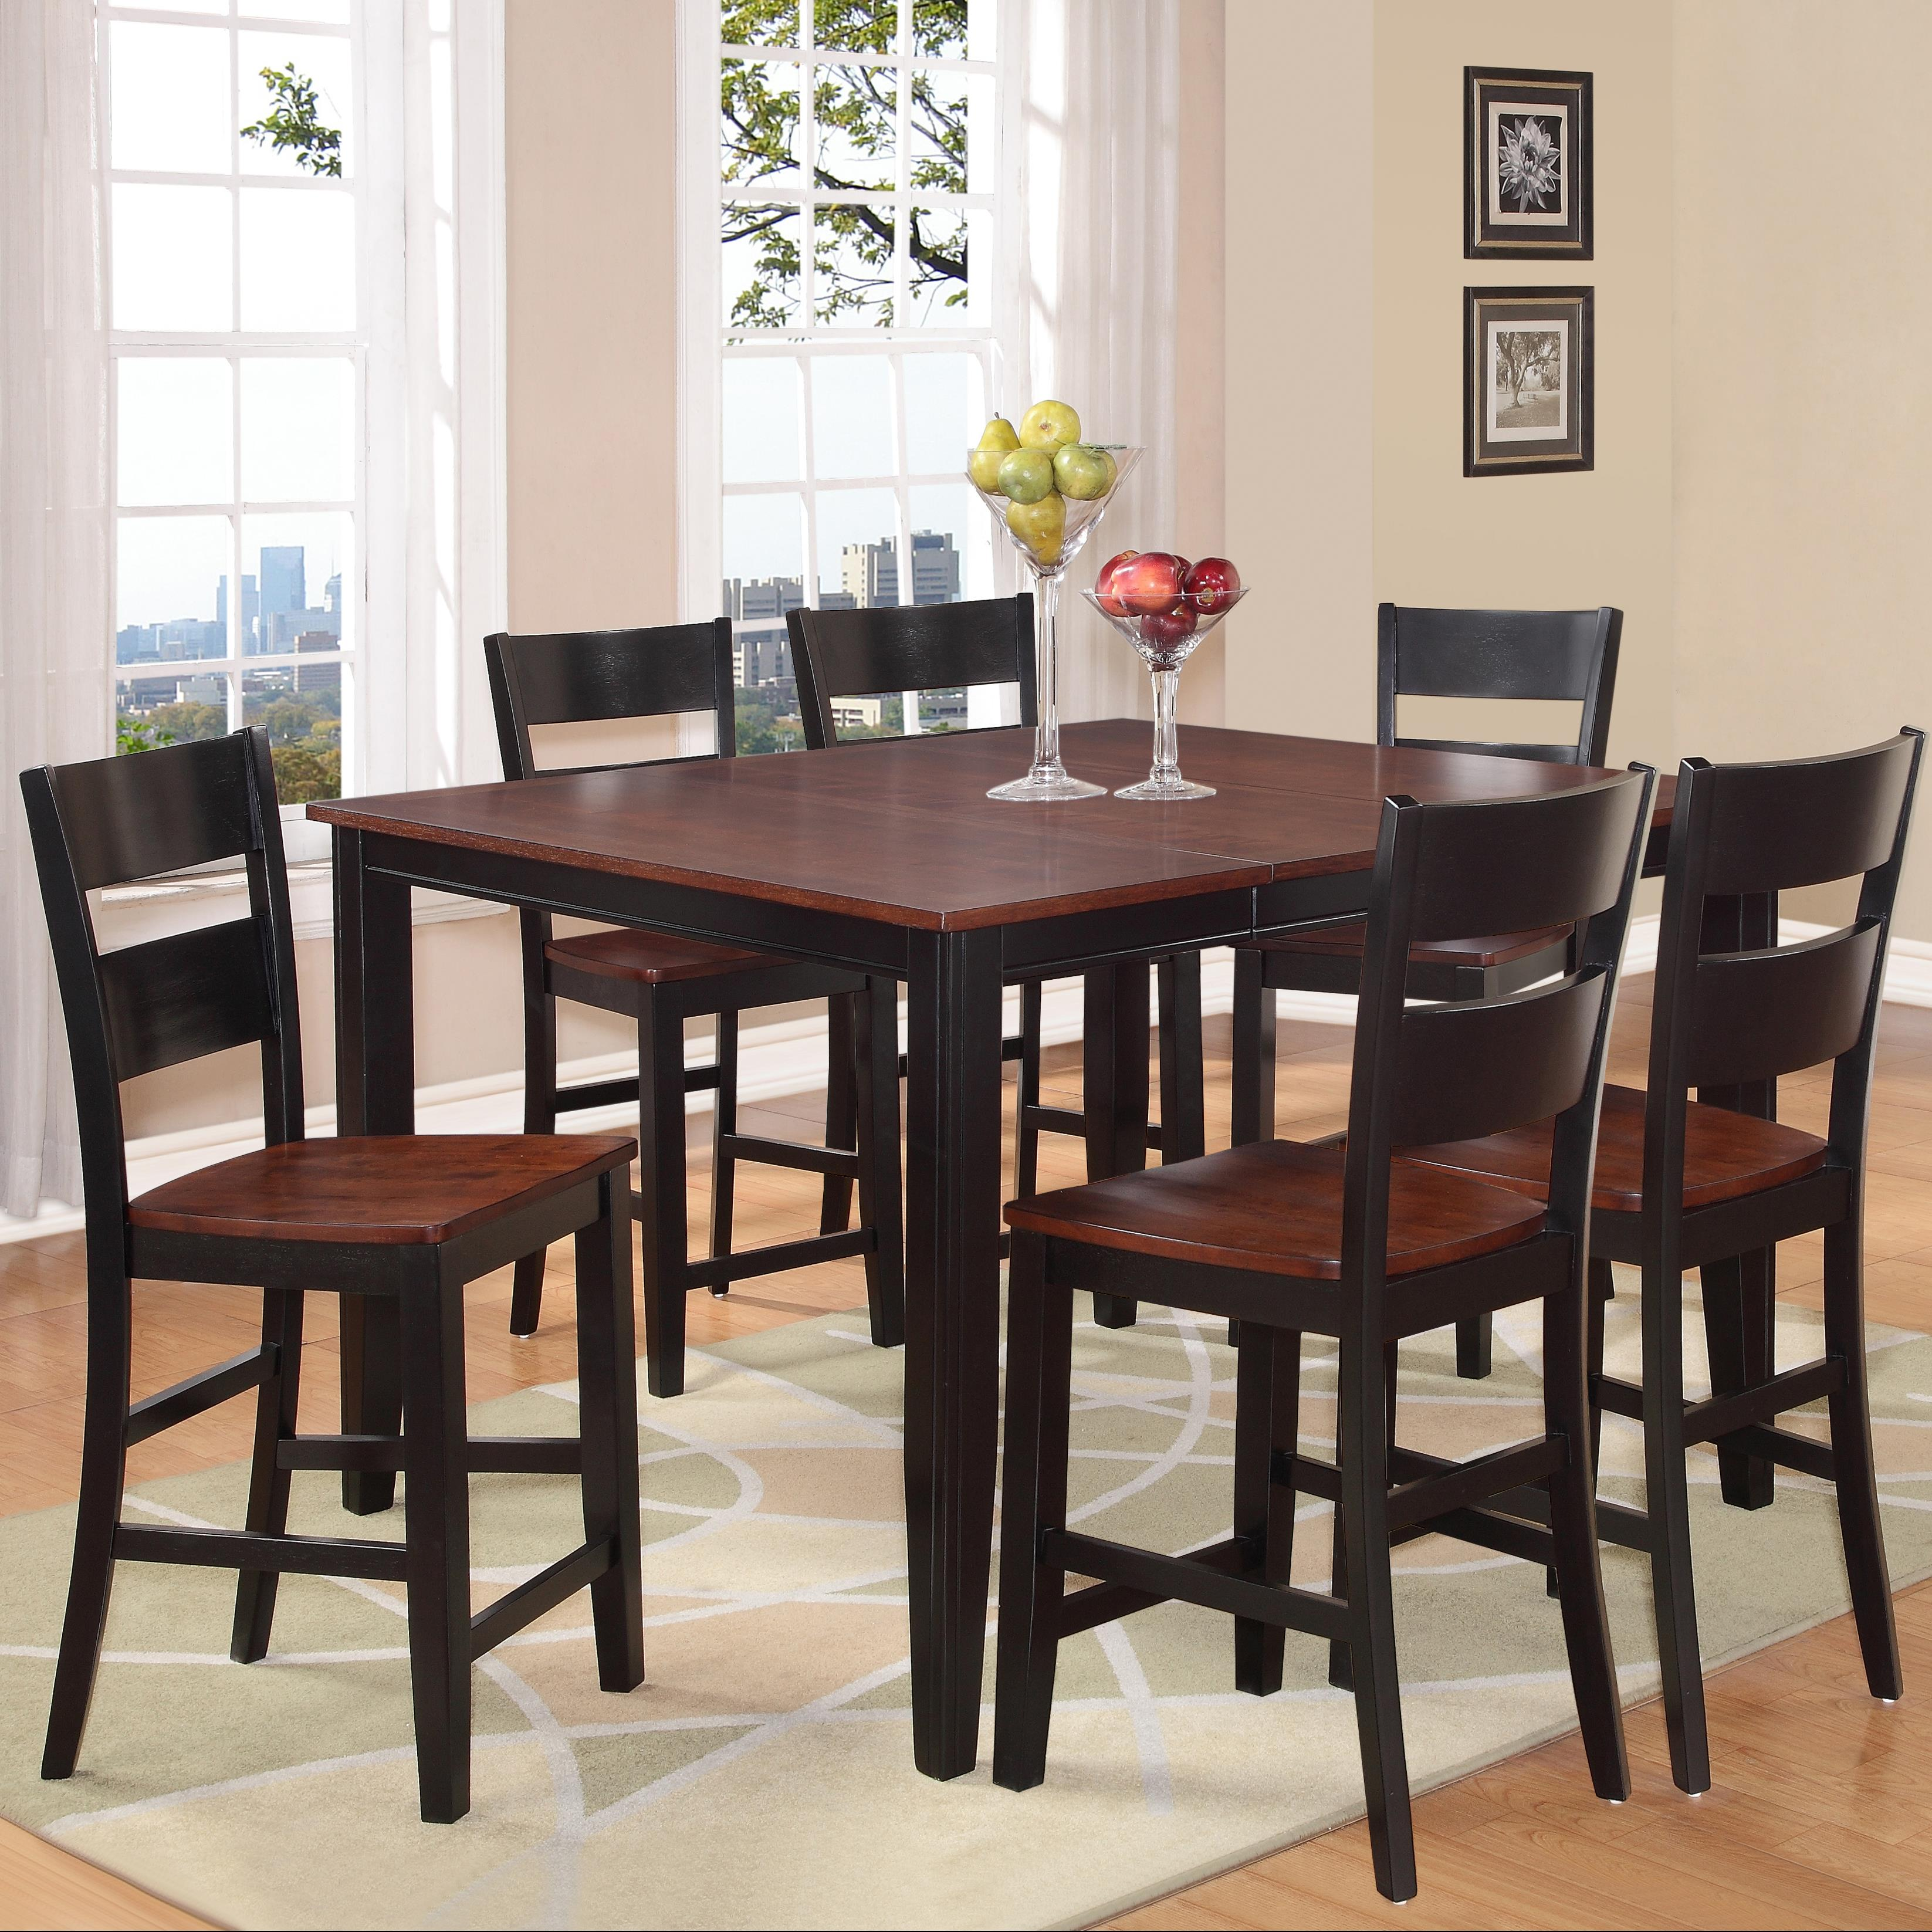 holland house 7 piece counter height dining set item number 8202tpb5454